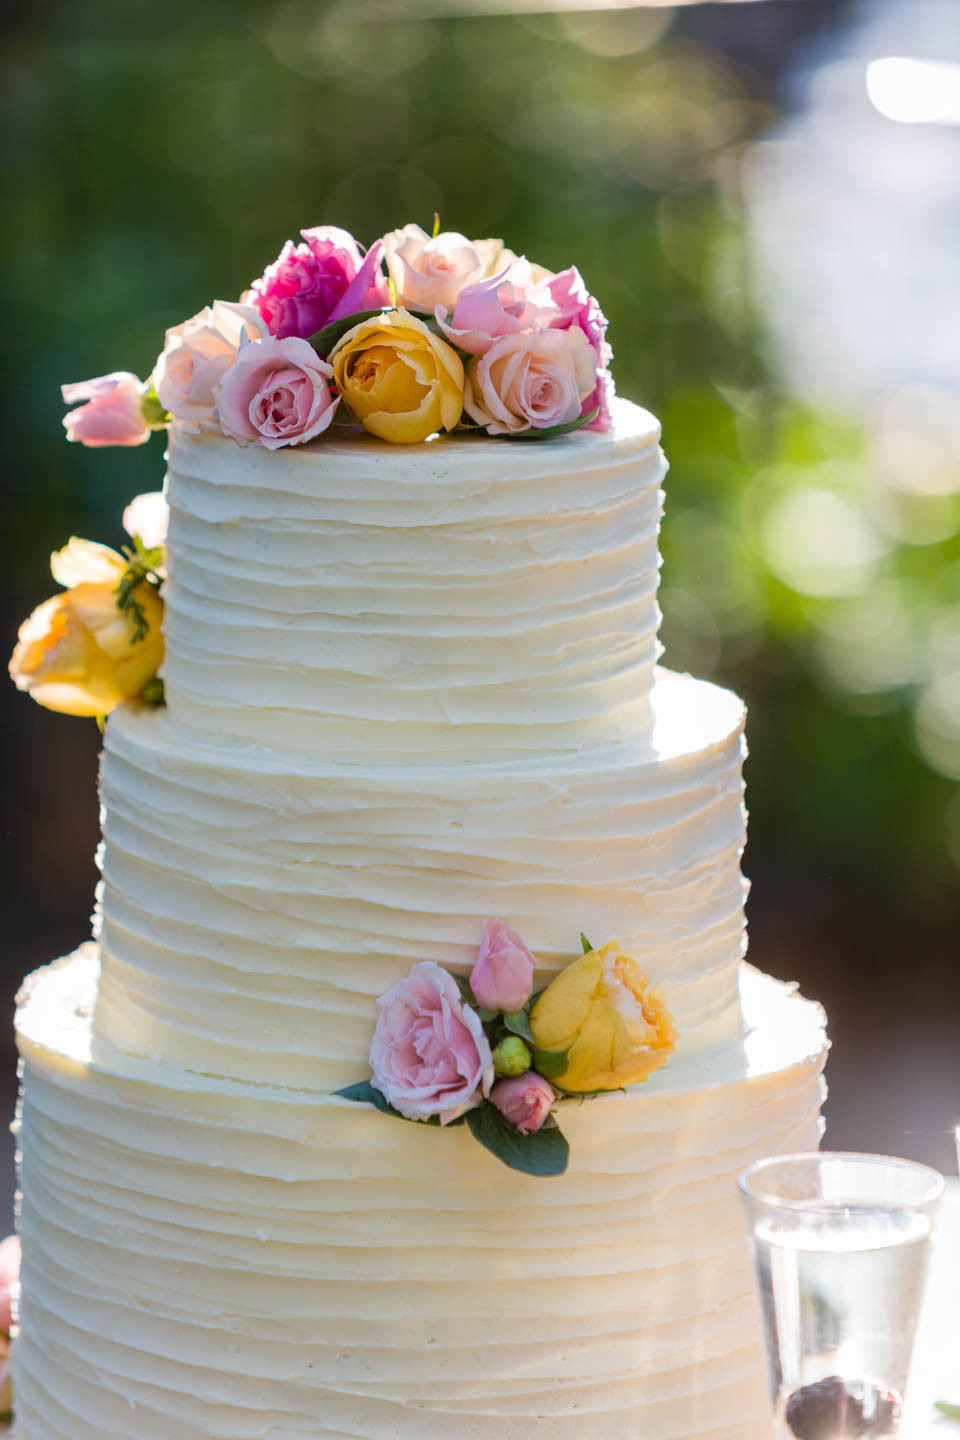 Wedding Cakes Photography  Wedding Cakes by Le Croissant Catering